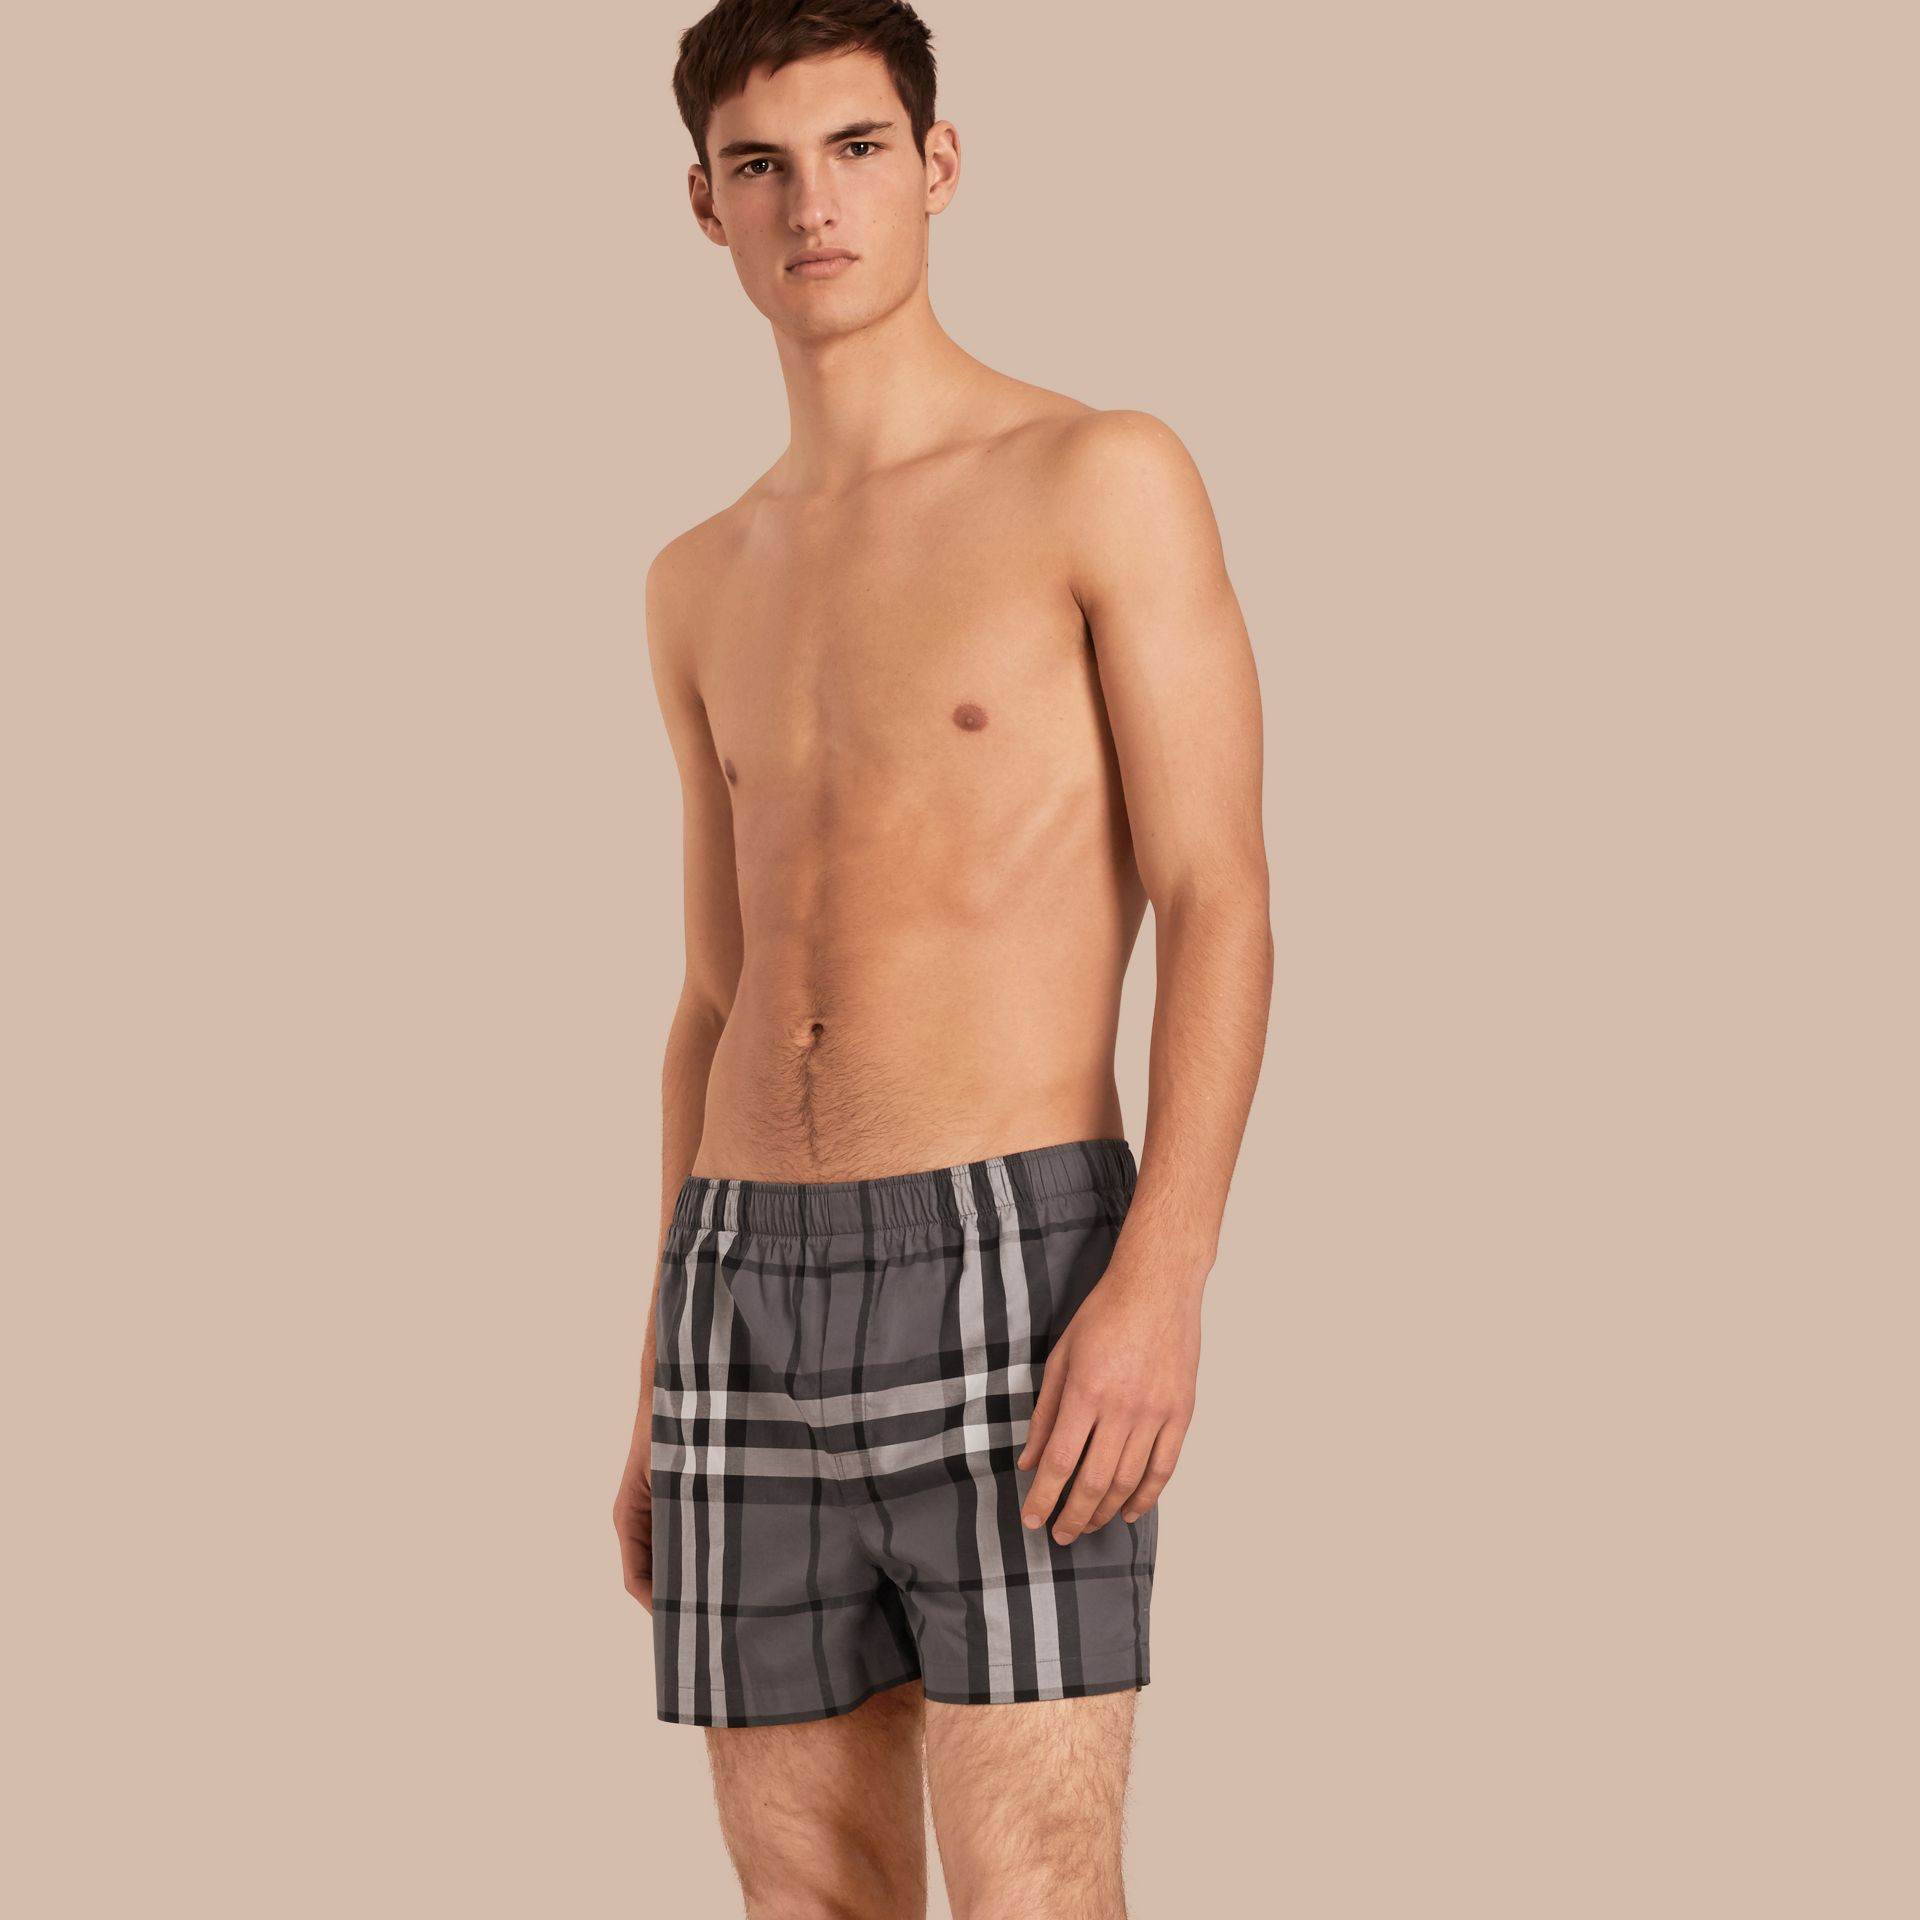 Charcoal Check Twill Cotton Boxer Shorts Charcoal - gallery image 1